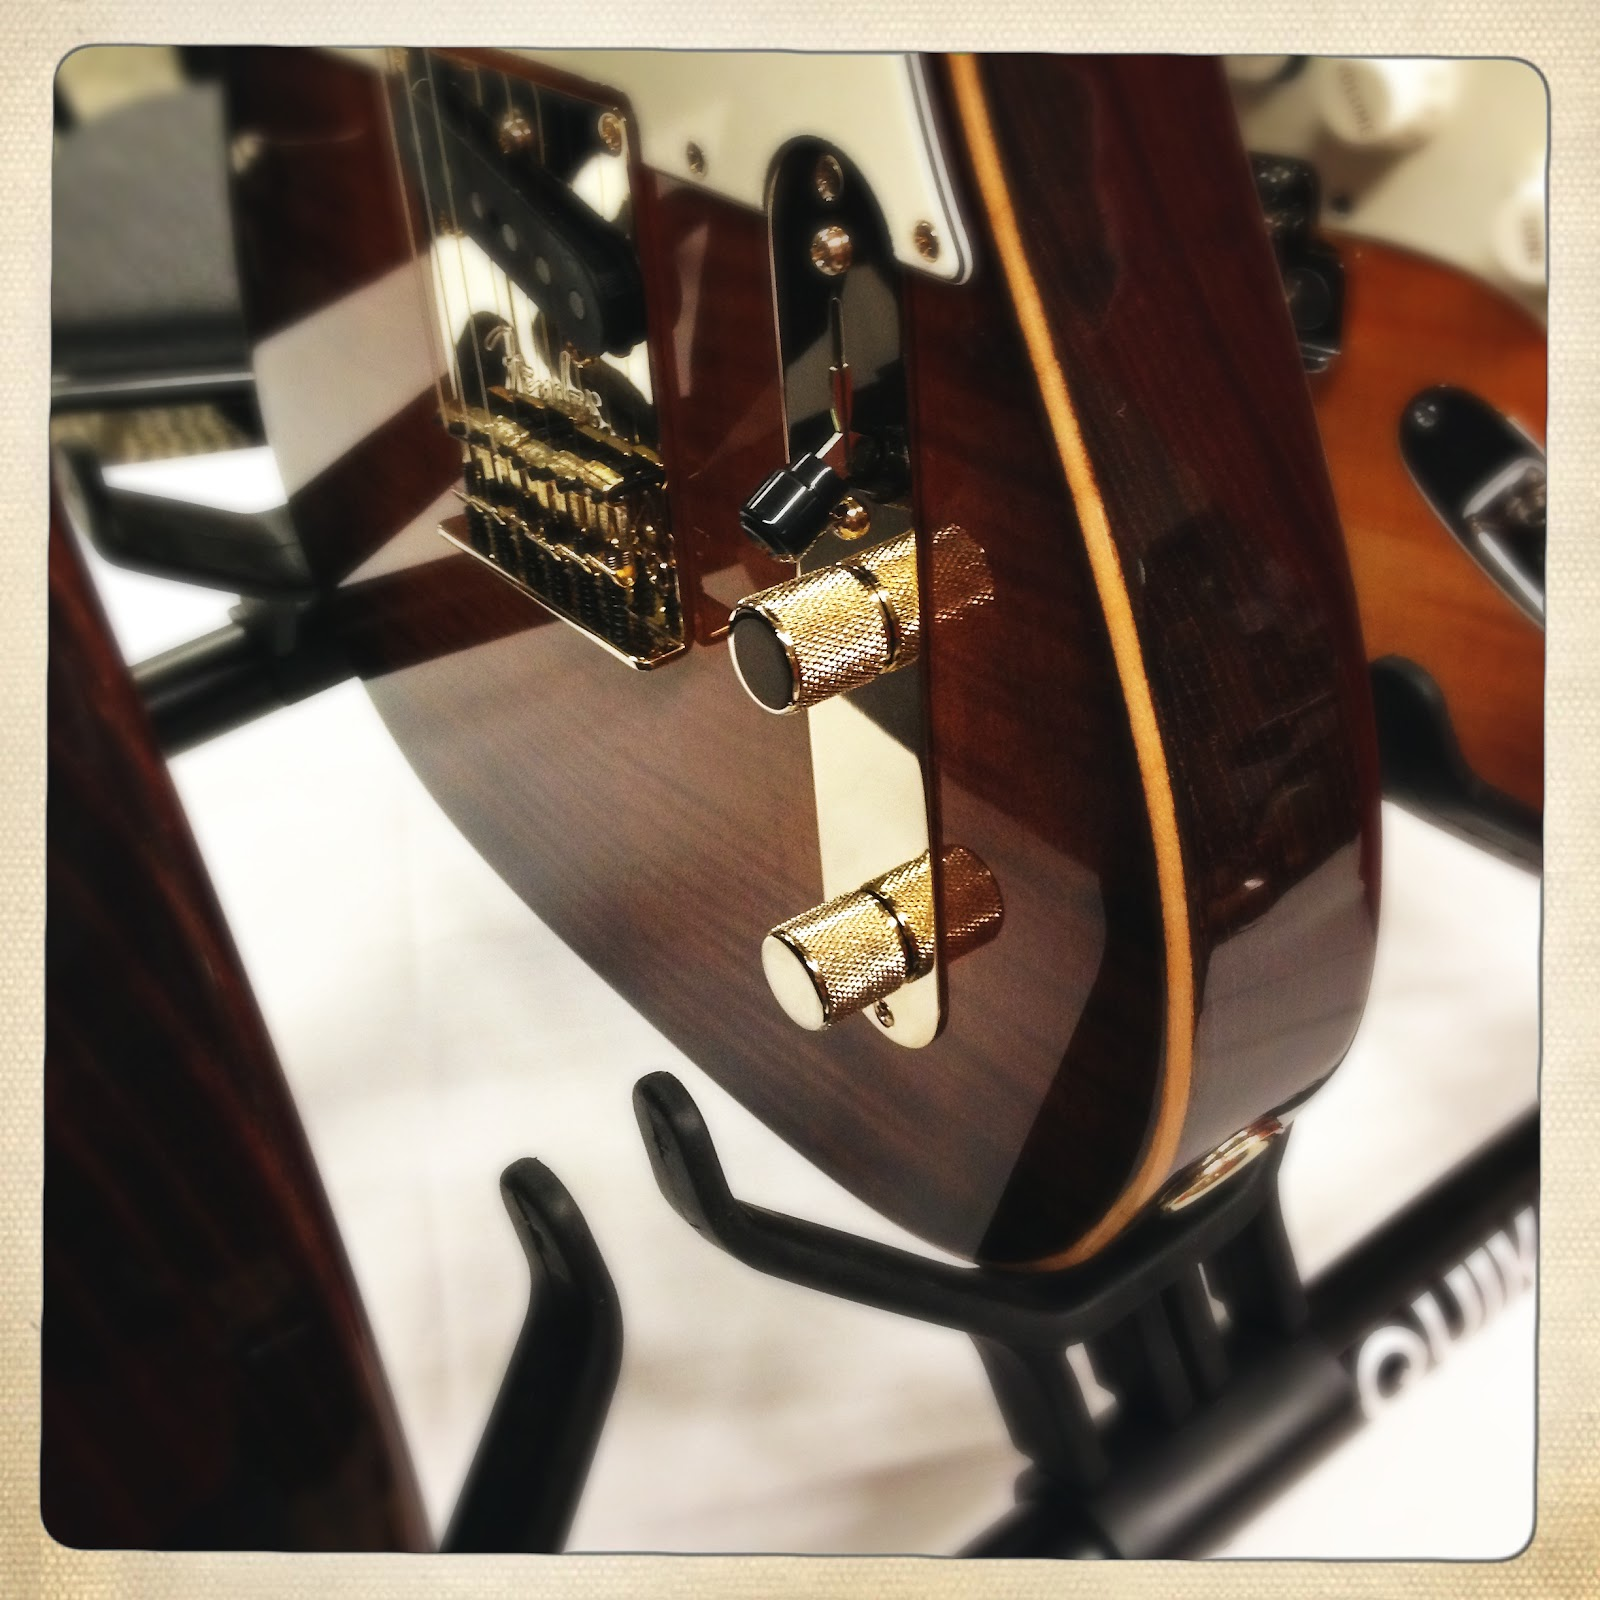 IPHONE PHOTO ROUNDUP: SEATTLE/TACOMA SPRING GUITAR SHOW